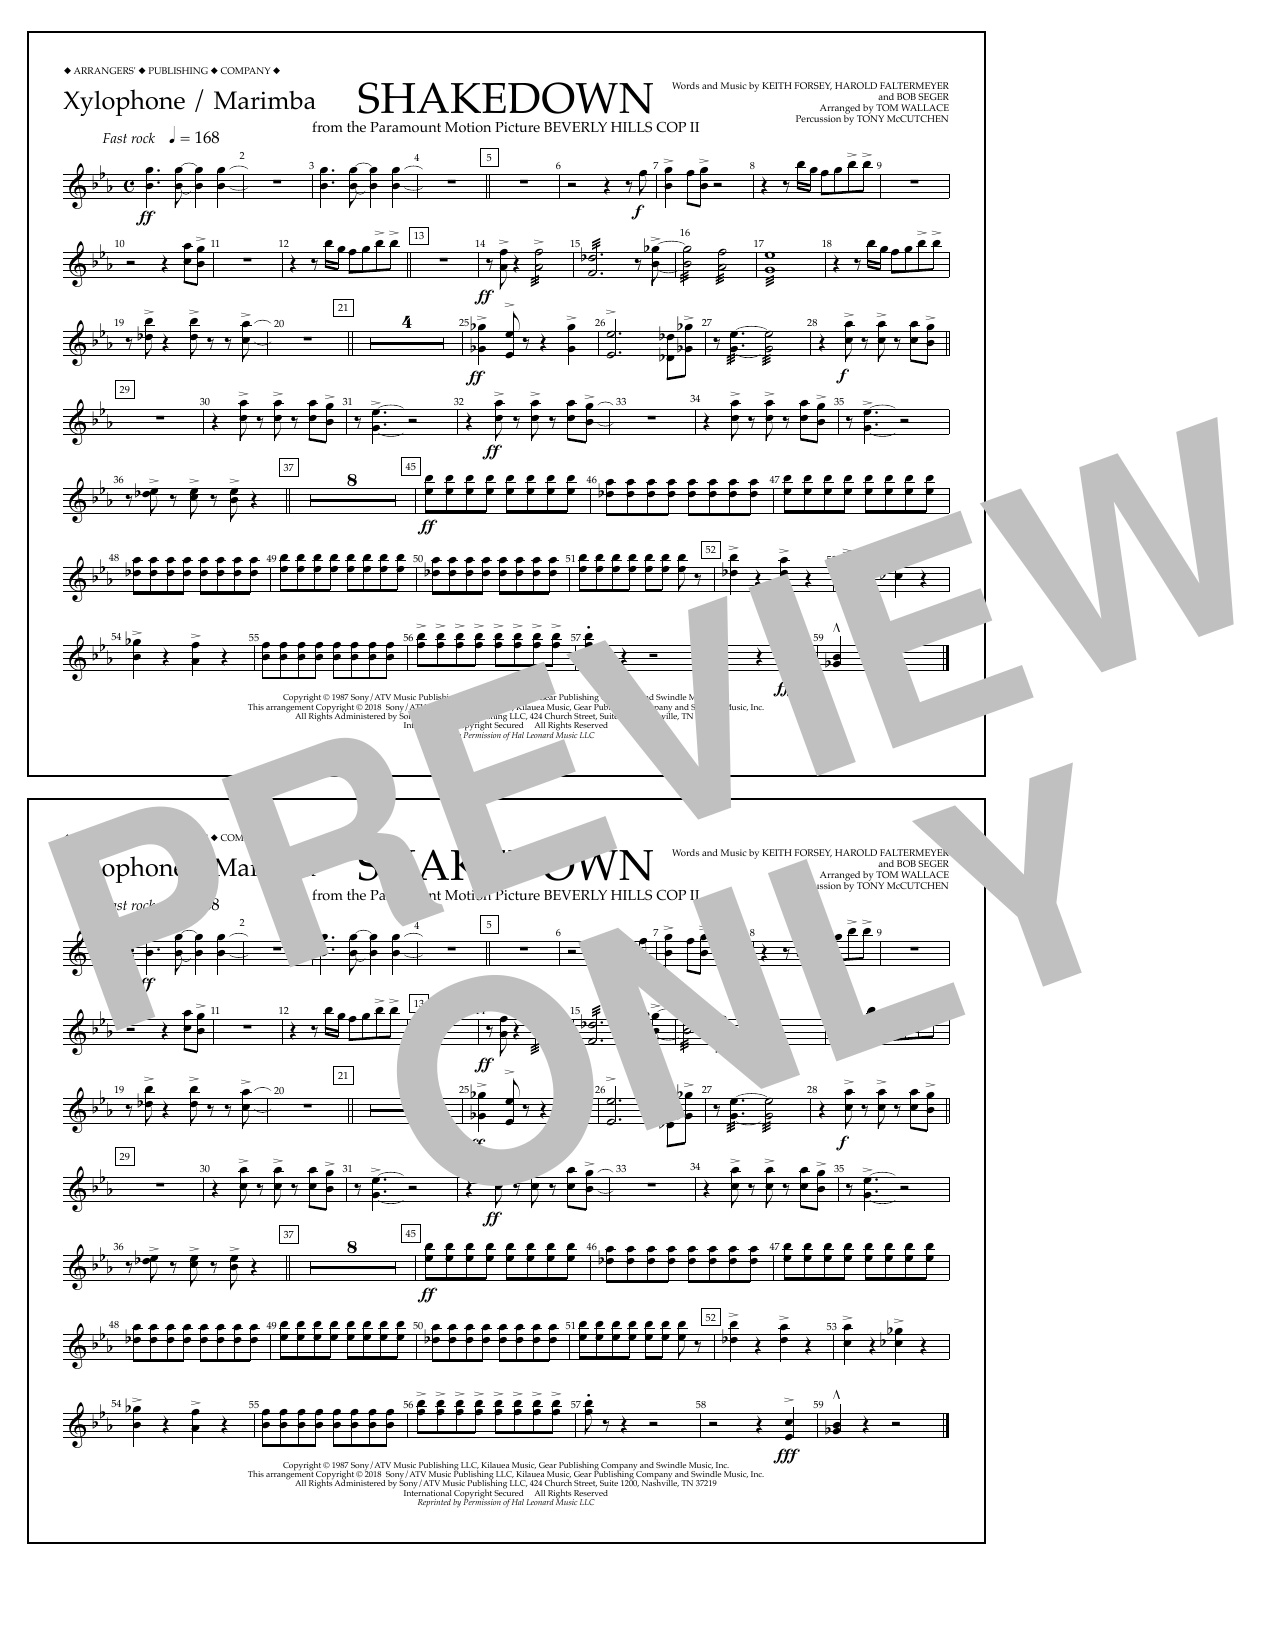 Tom Wallace Shakedown - Xylophone/Marimba sheet music notes and chords. Download Printable PDF.